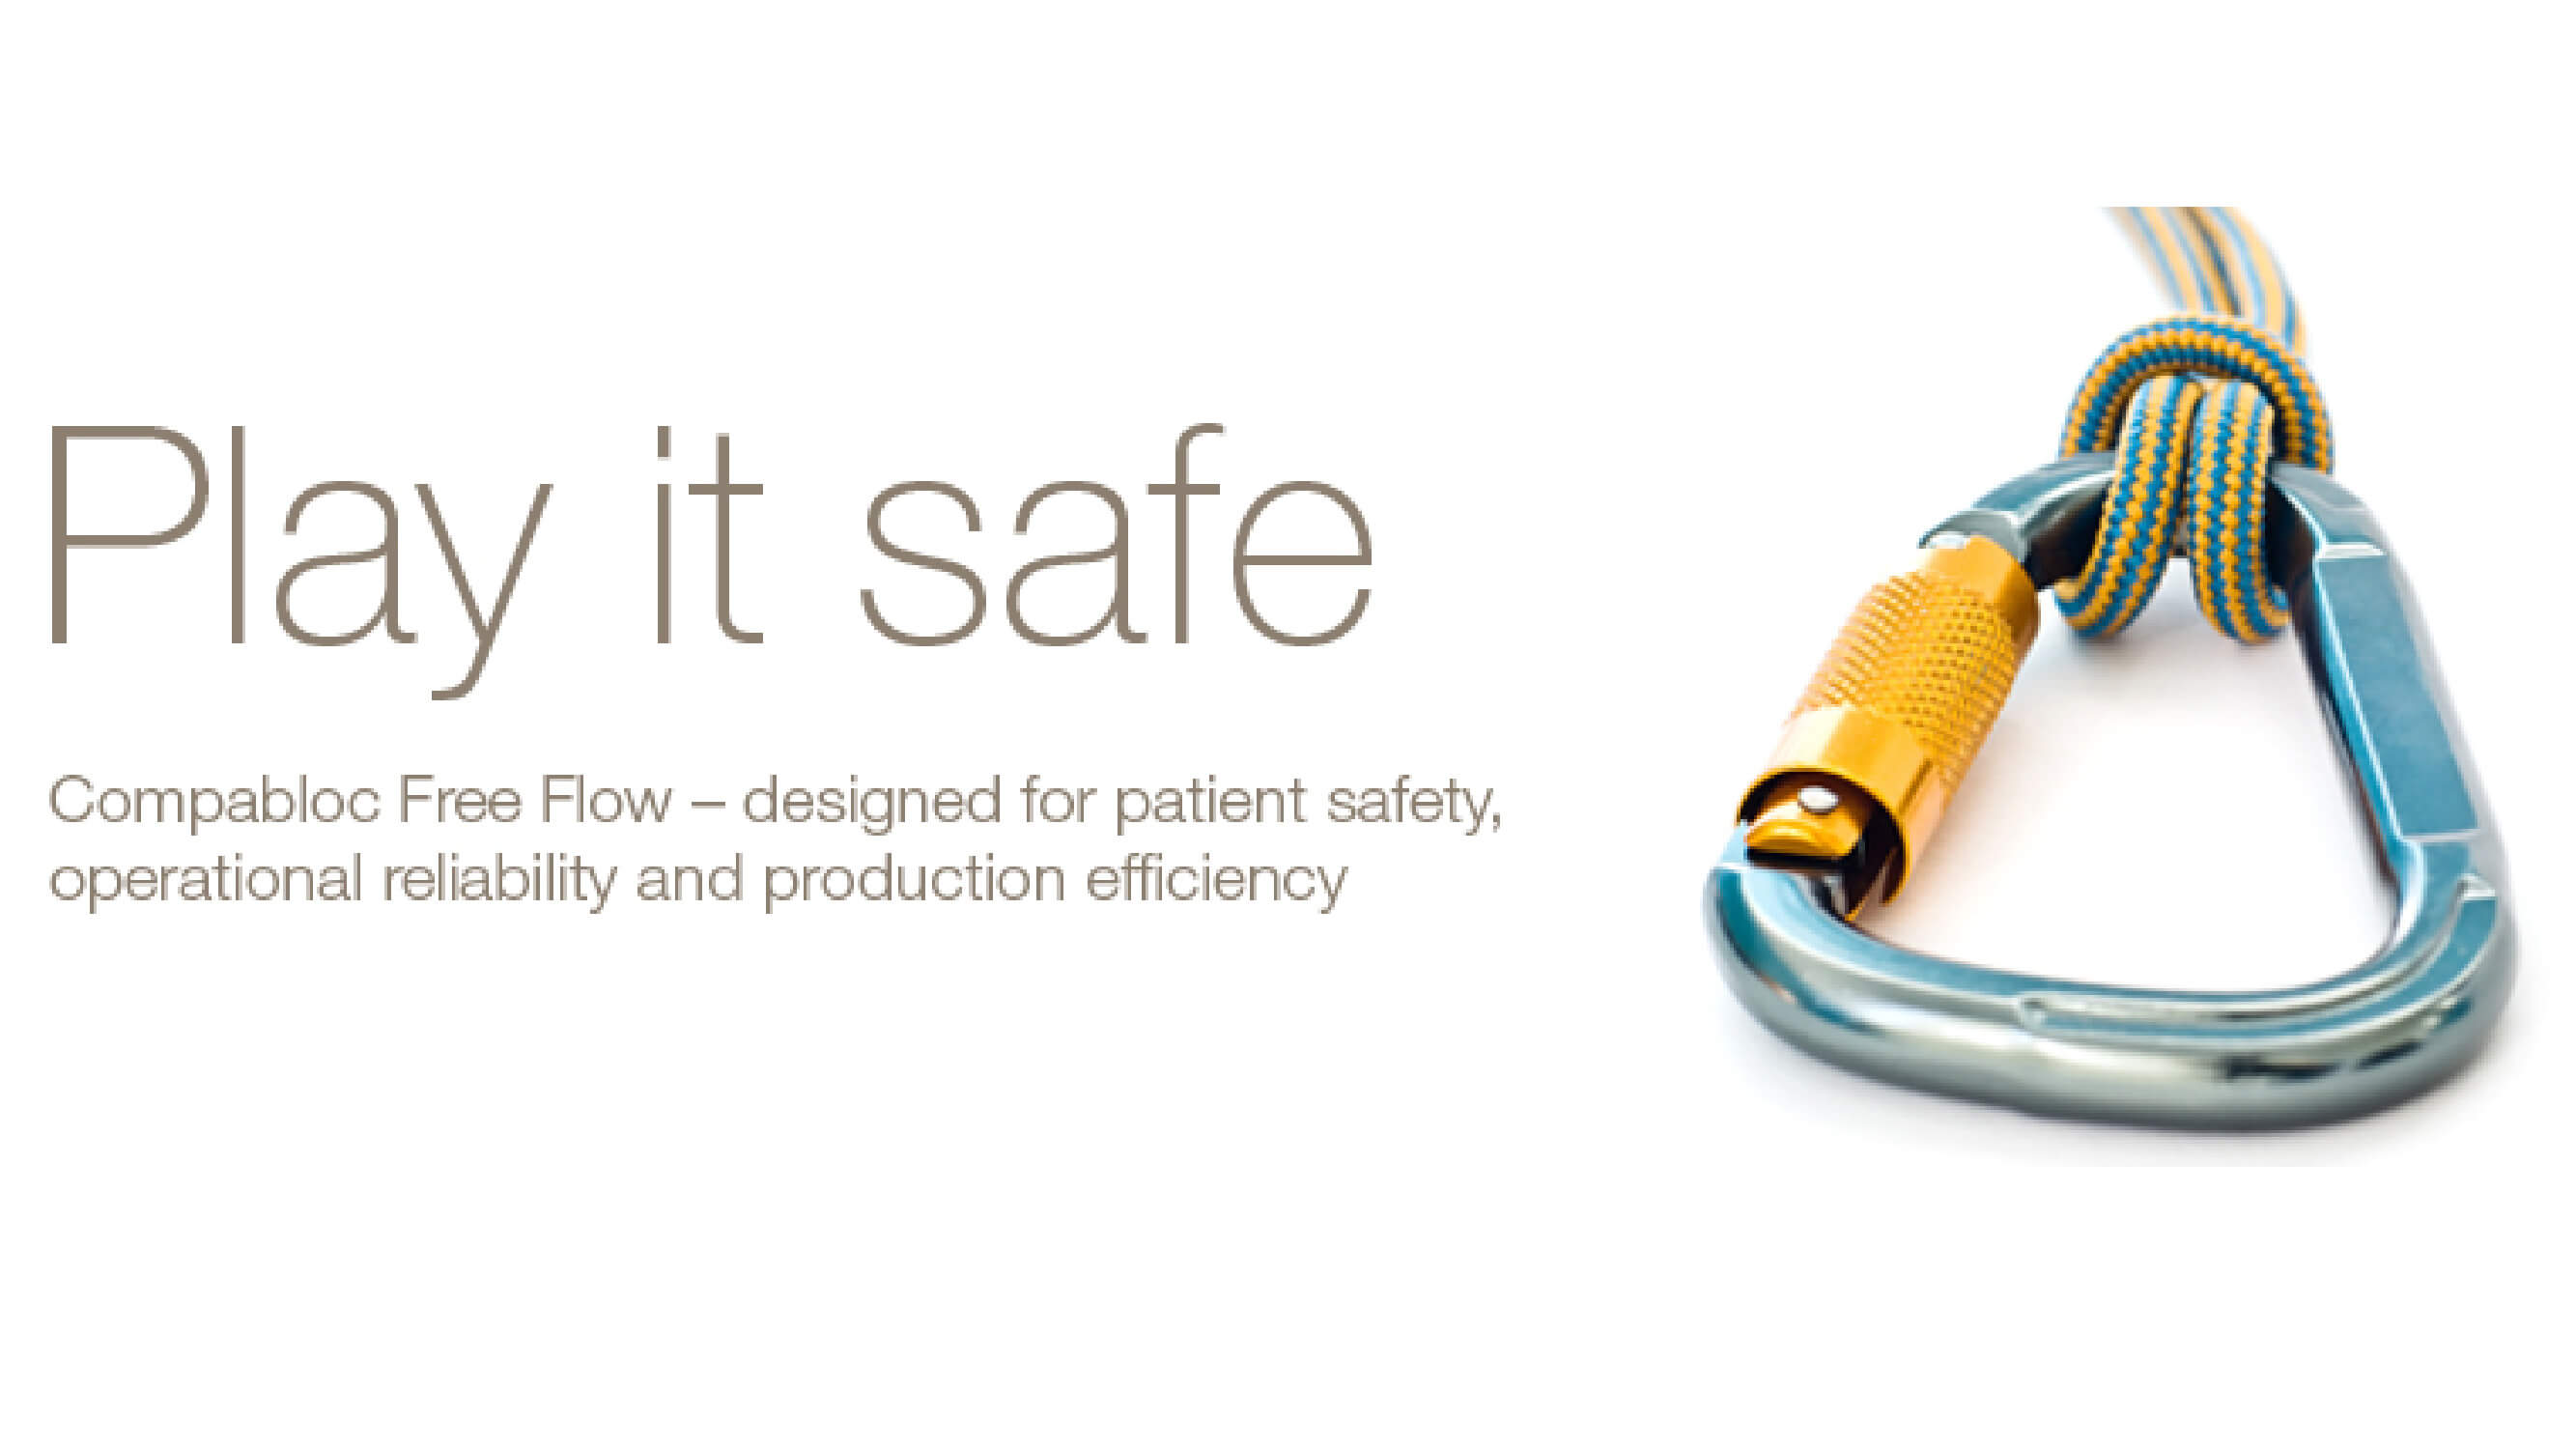 Compabloc freeflow Play it safe brochure 640X360